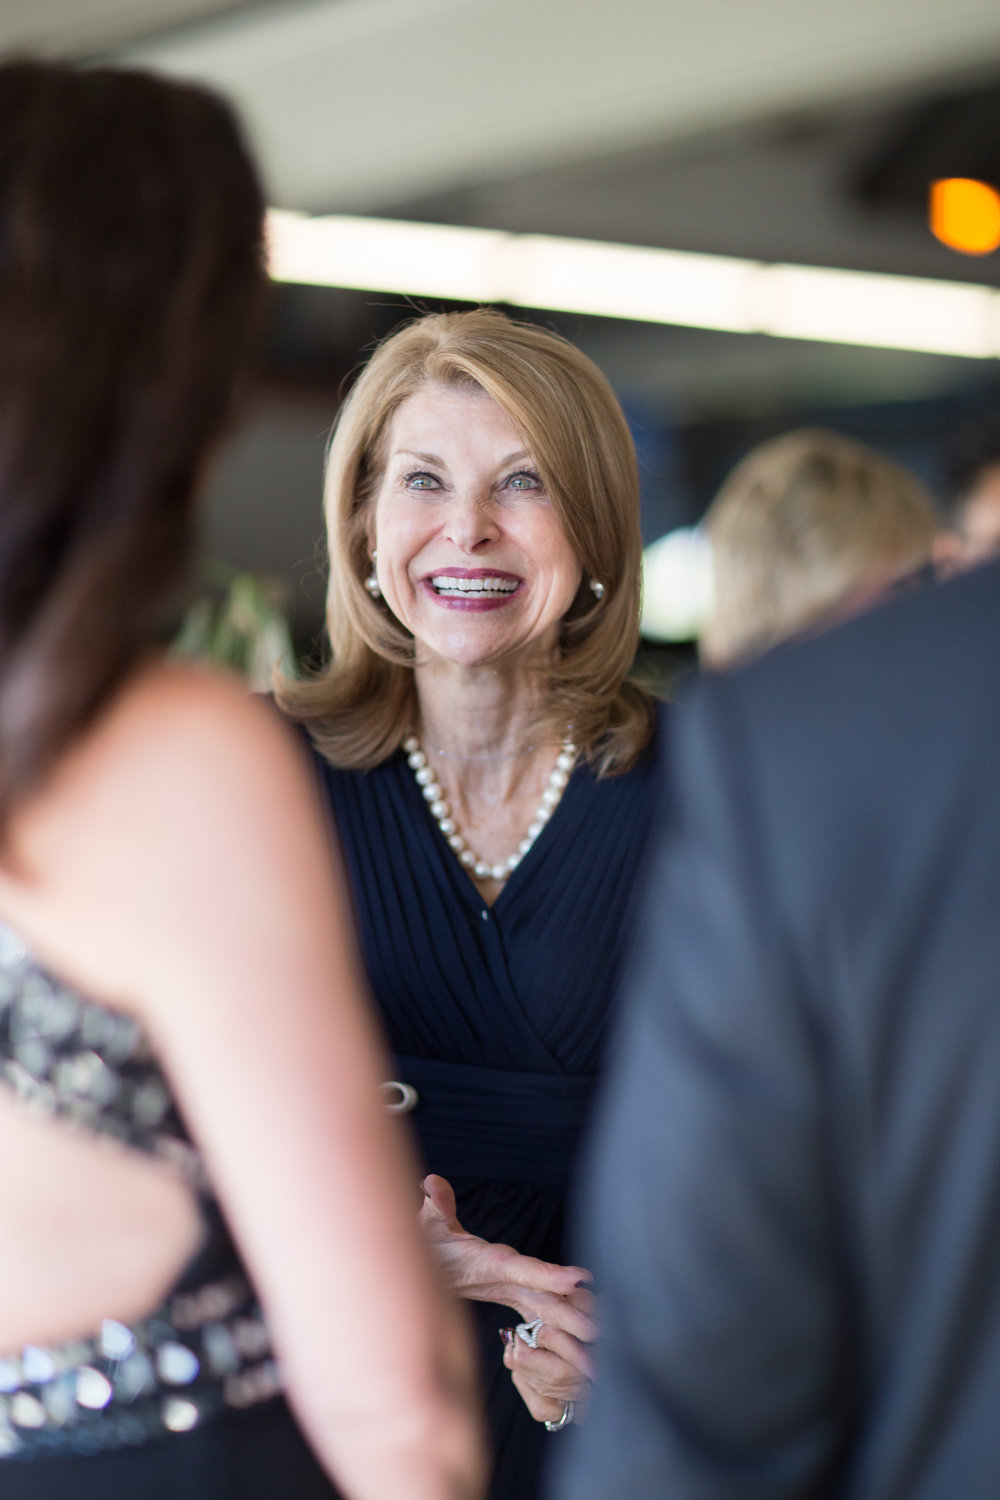 Pam Tebow shares a fabulous smile with gala attendees